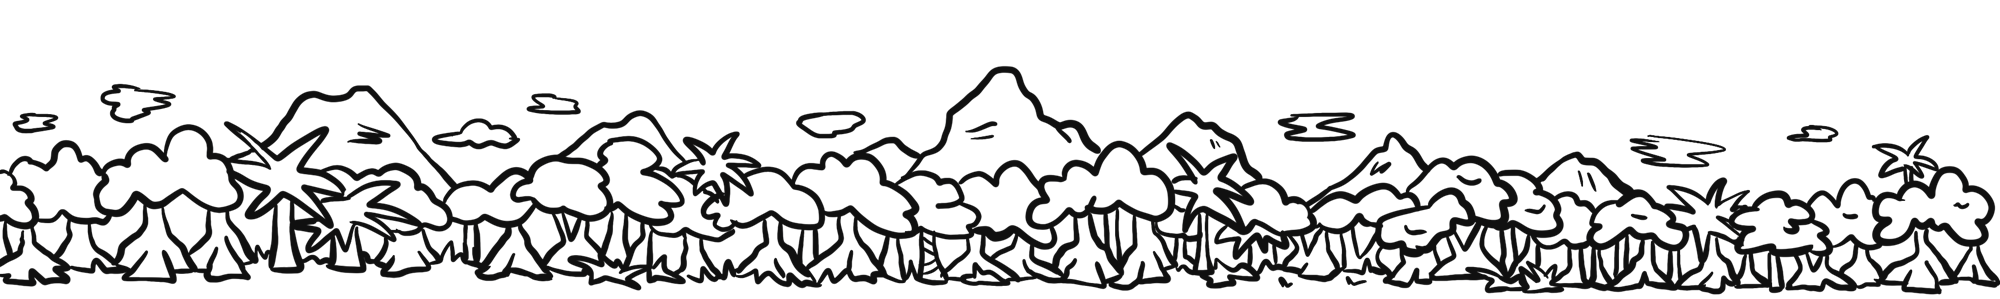 Cartoon drawing of forest and mountains